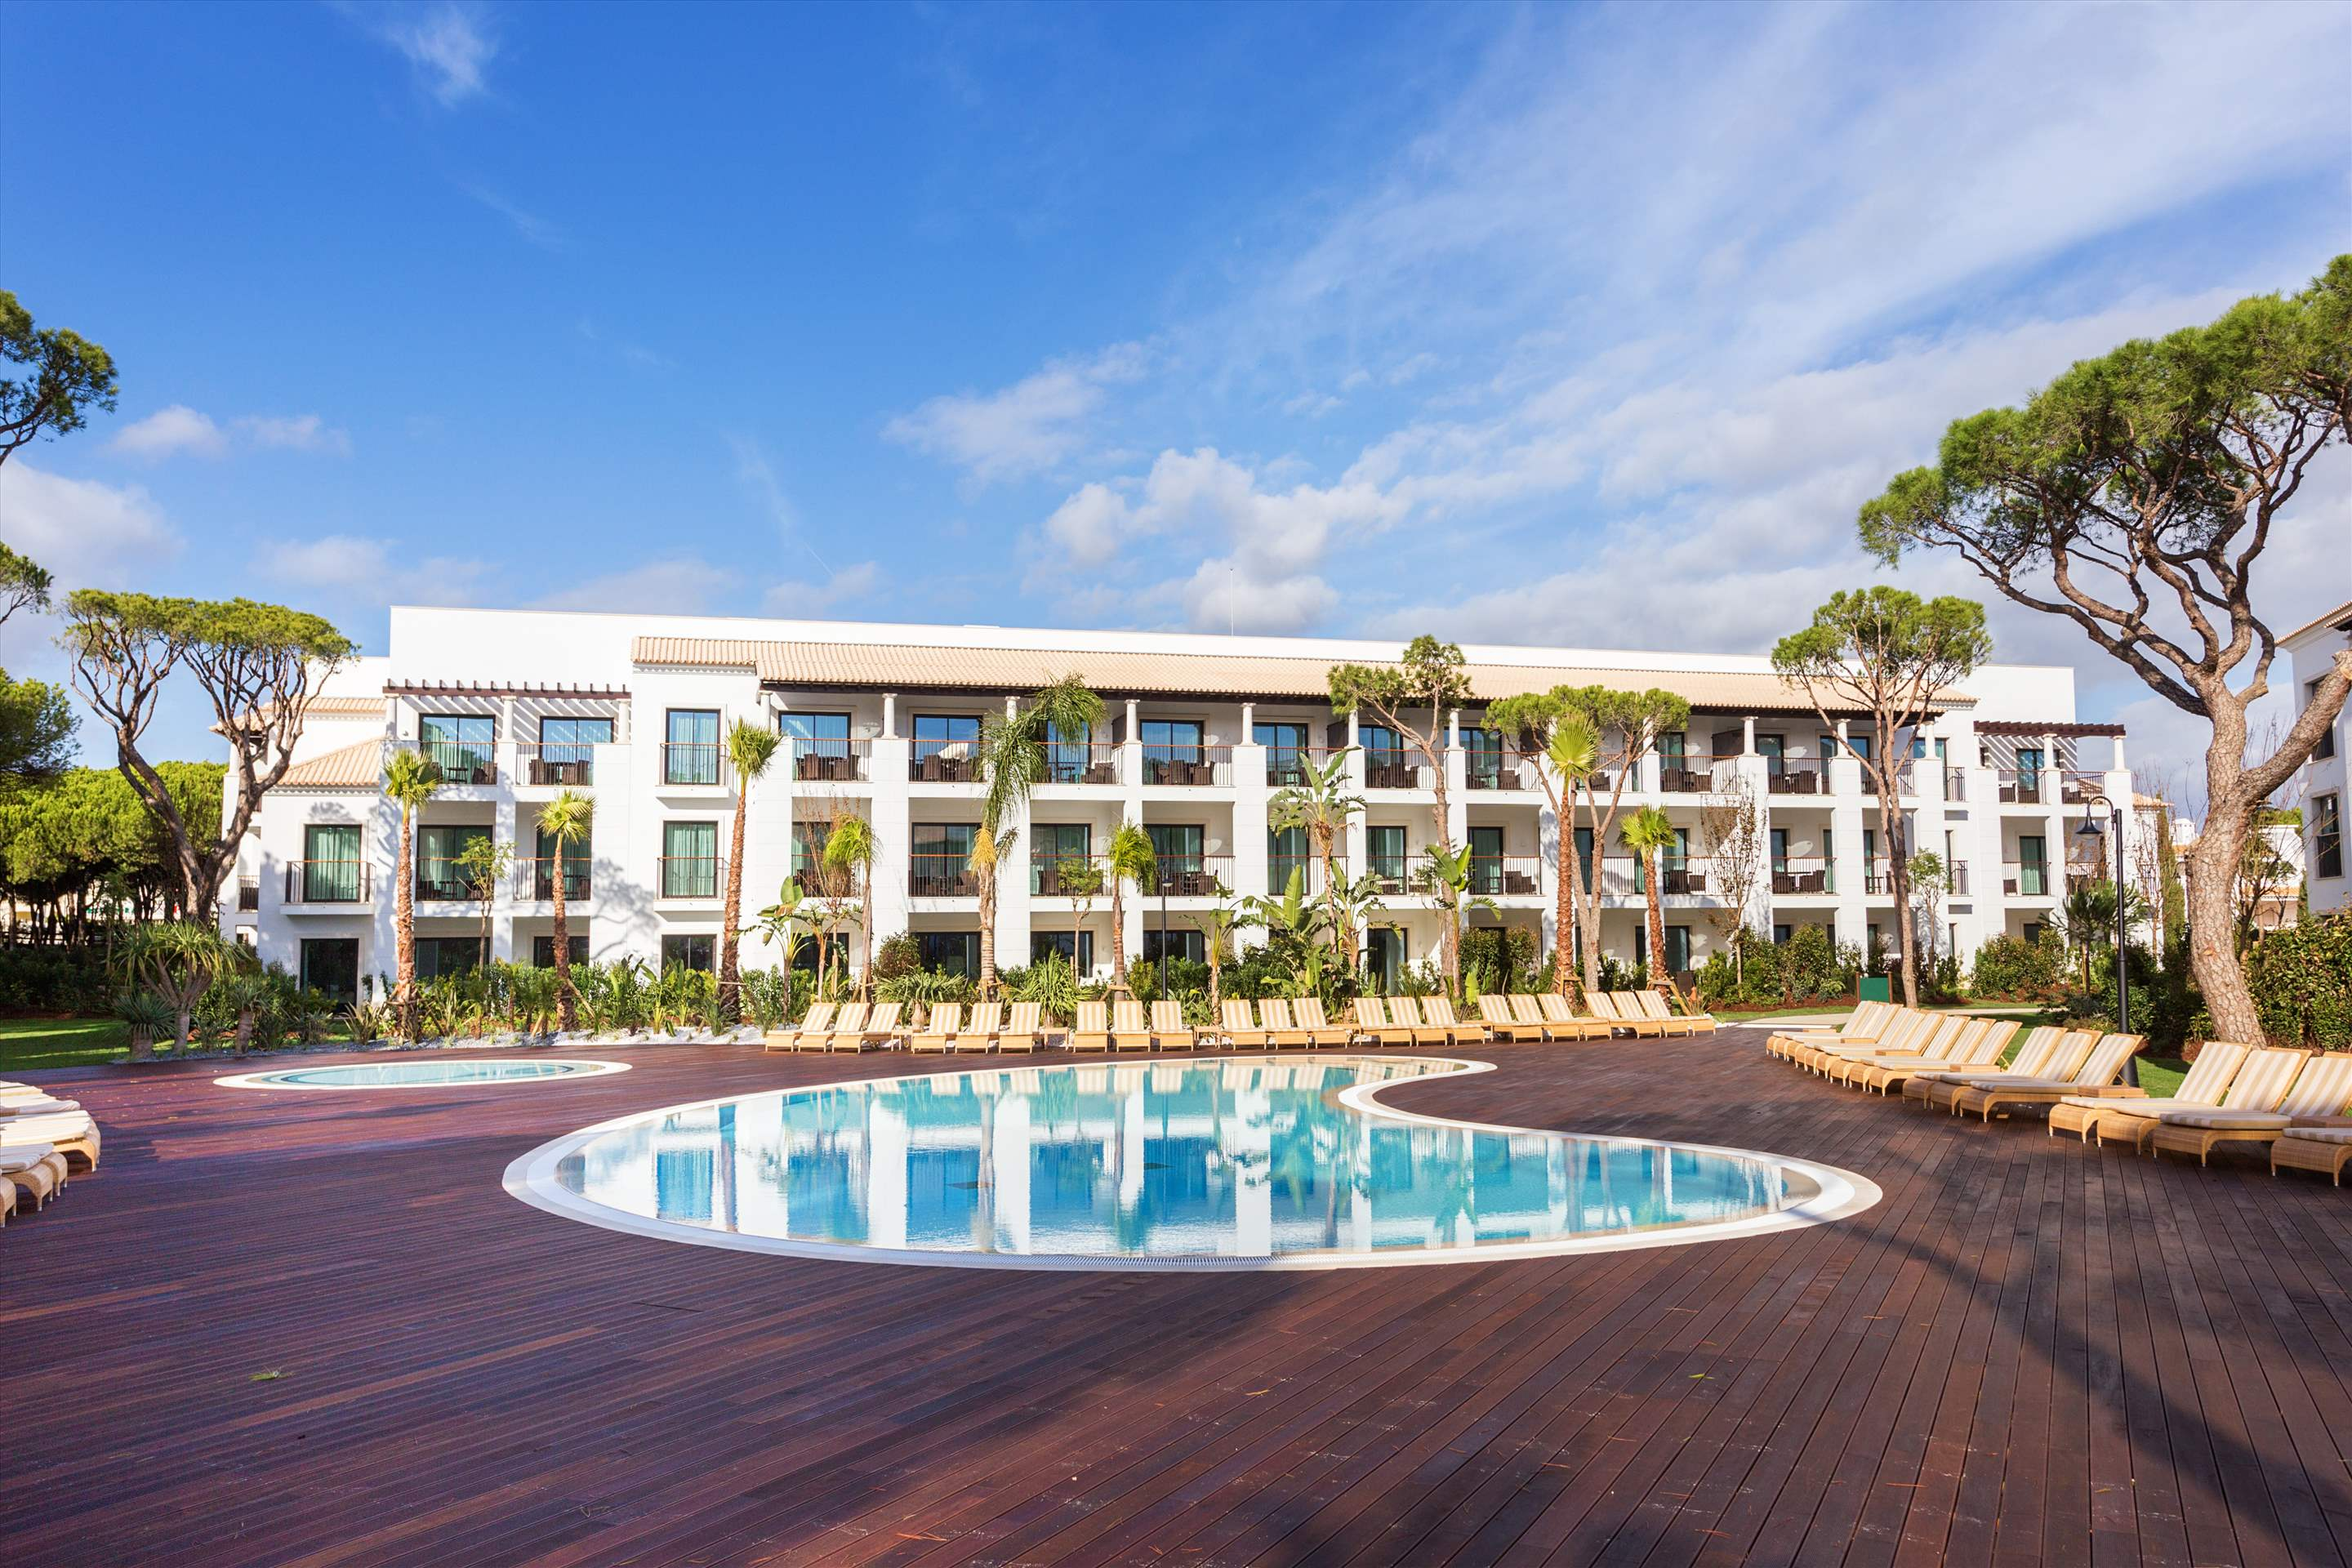 Pine Cliffs Gardens, Two Bedroom Suite, S/C Basis, 2 bedroom apartment in Pine Cliffs Resort, Algarve